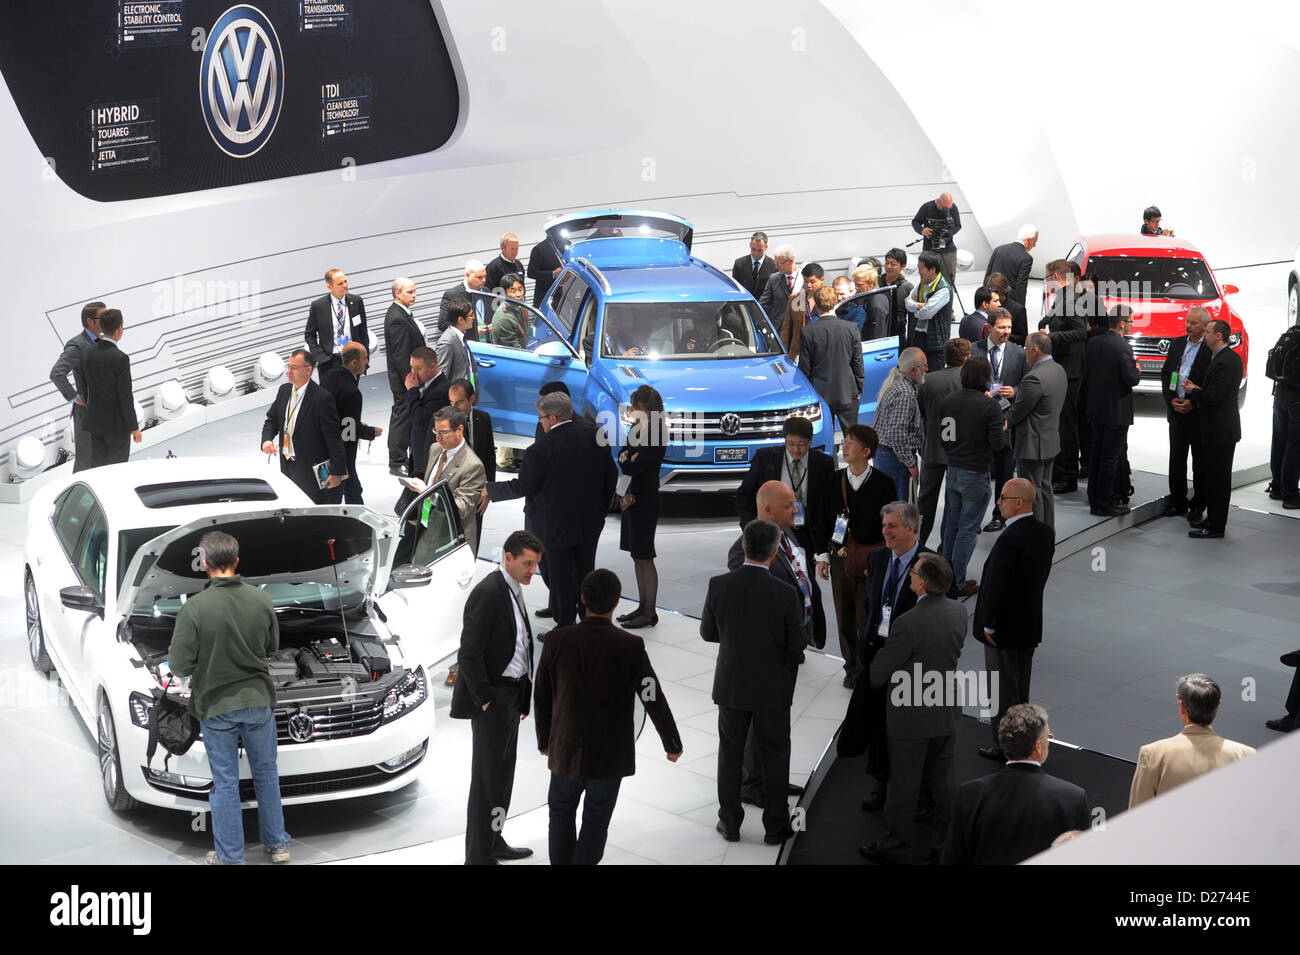 Visitors examine the new Volkswagen concept cars during the North American International Auto Show (NAIAS) in Detroit, - Stock Image